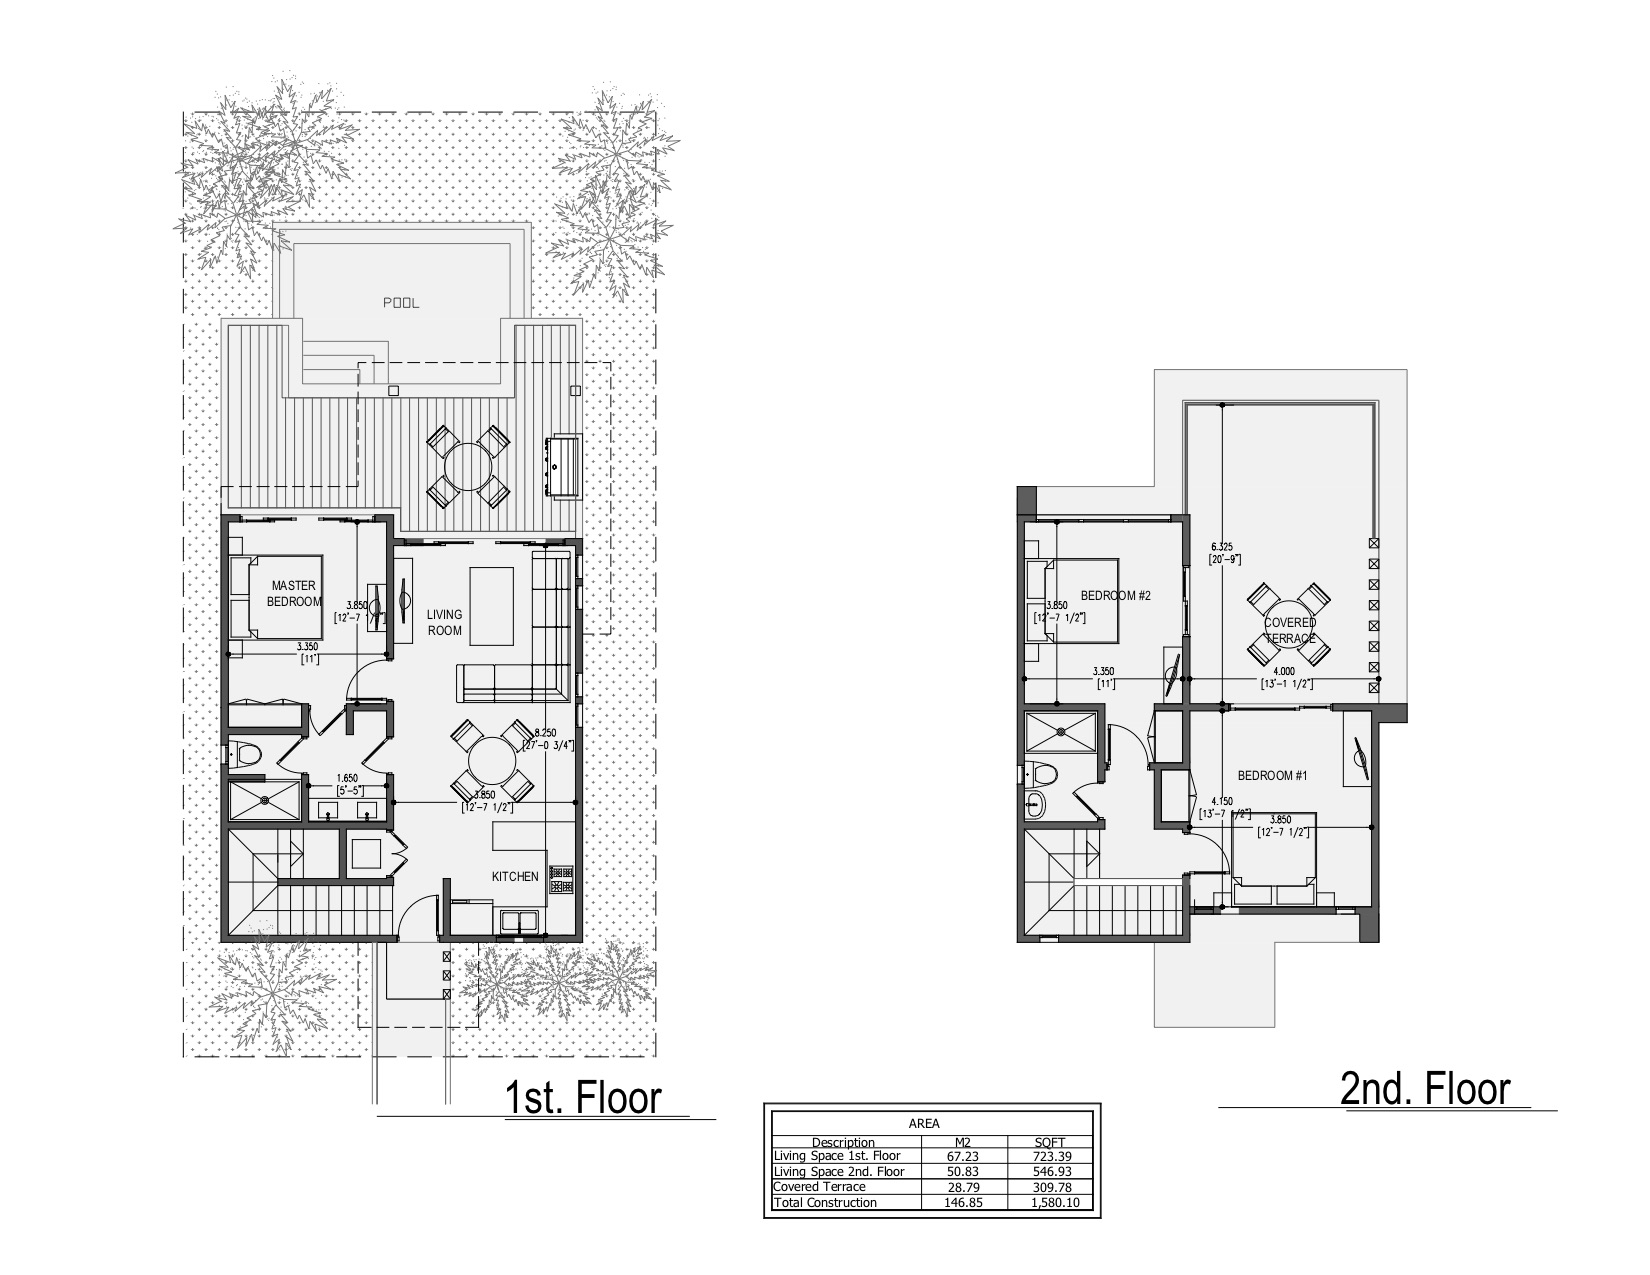 Mar - 3 Bedroom - 2 Story Beach Residences - Floor Plans